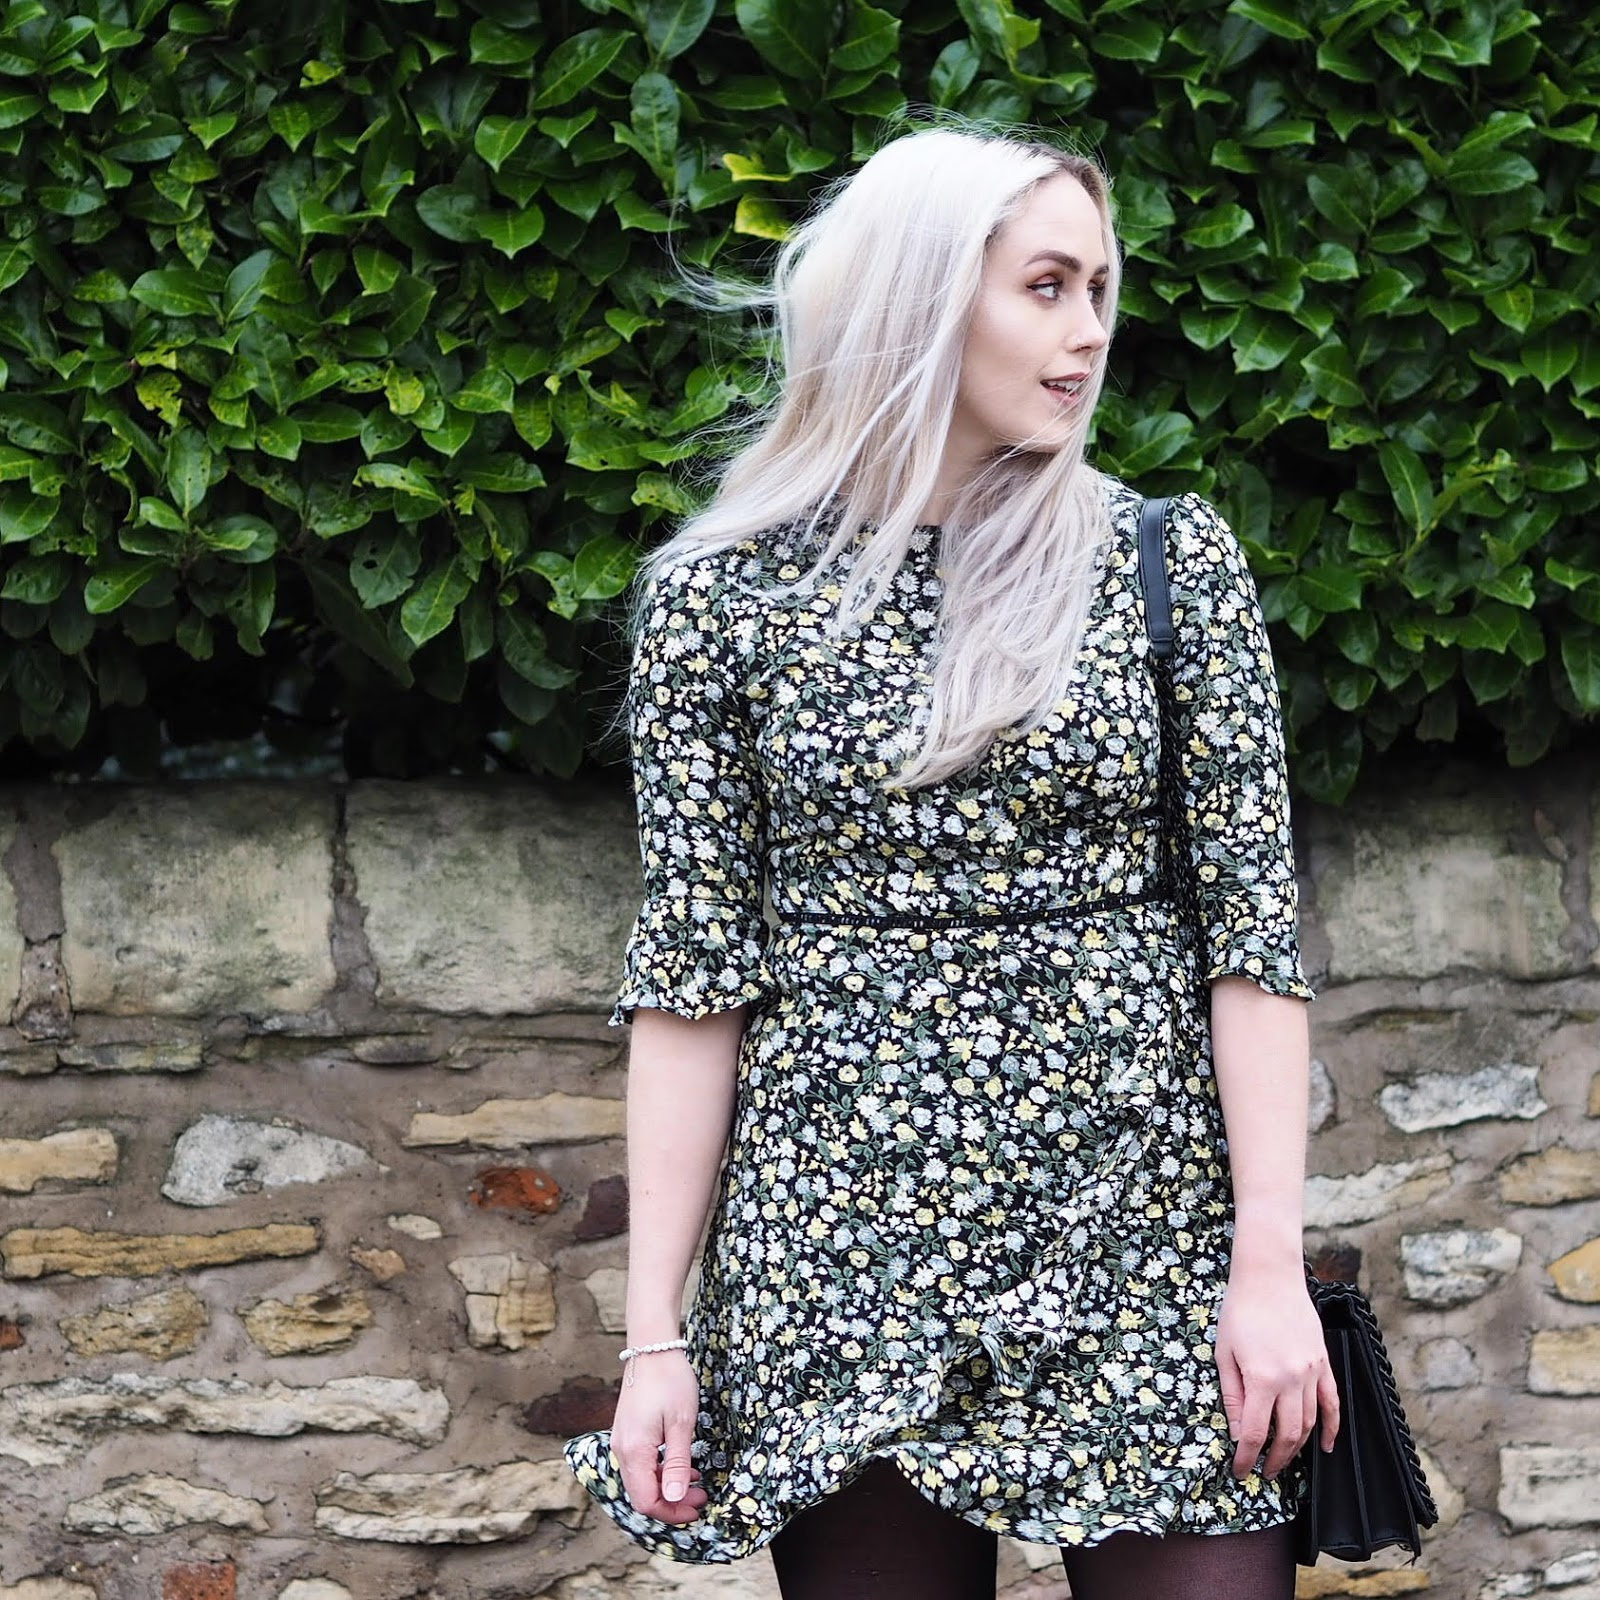 b8ba29b420ae Our Ditsy Floral Tea Dress featured by IzzyMarieHill on Instagram